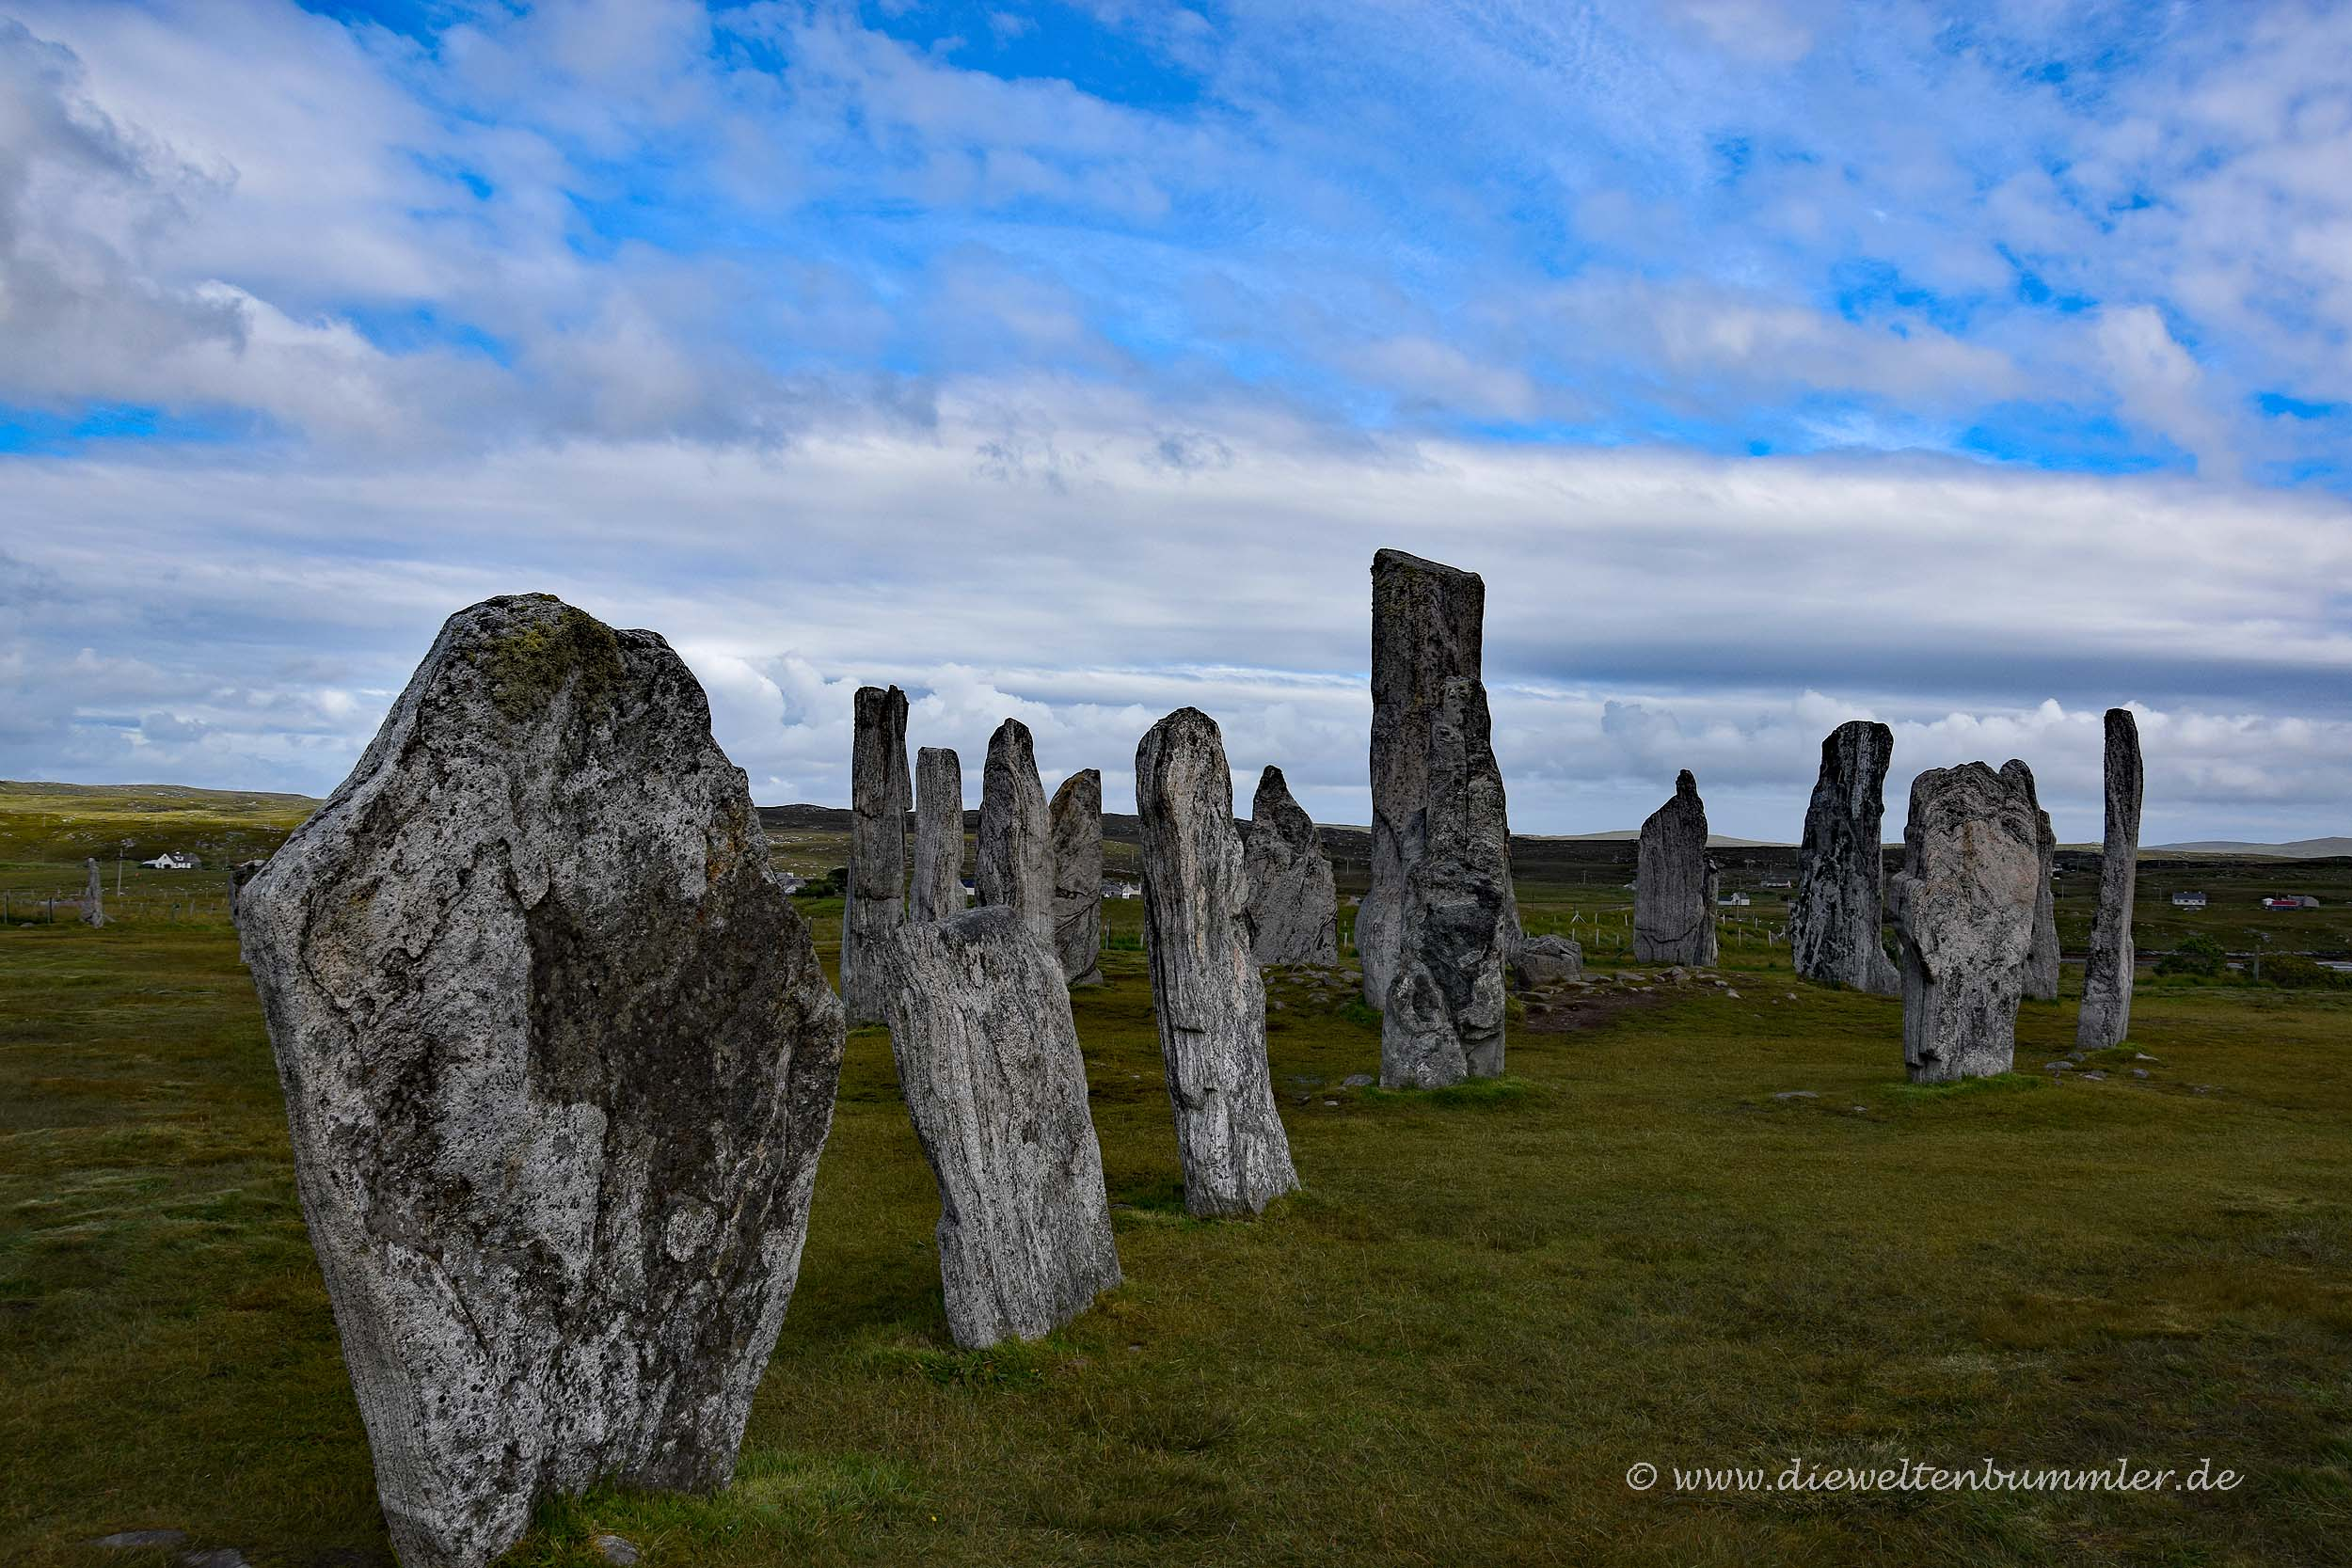 In Kreuzform stehen die Callanish-Stones